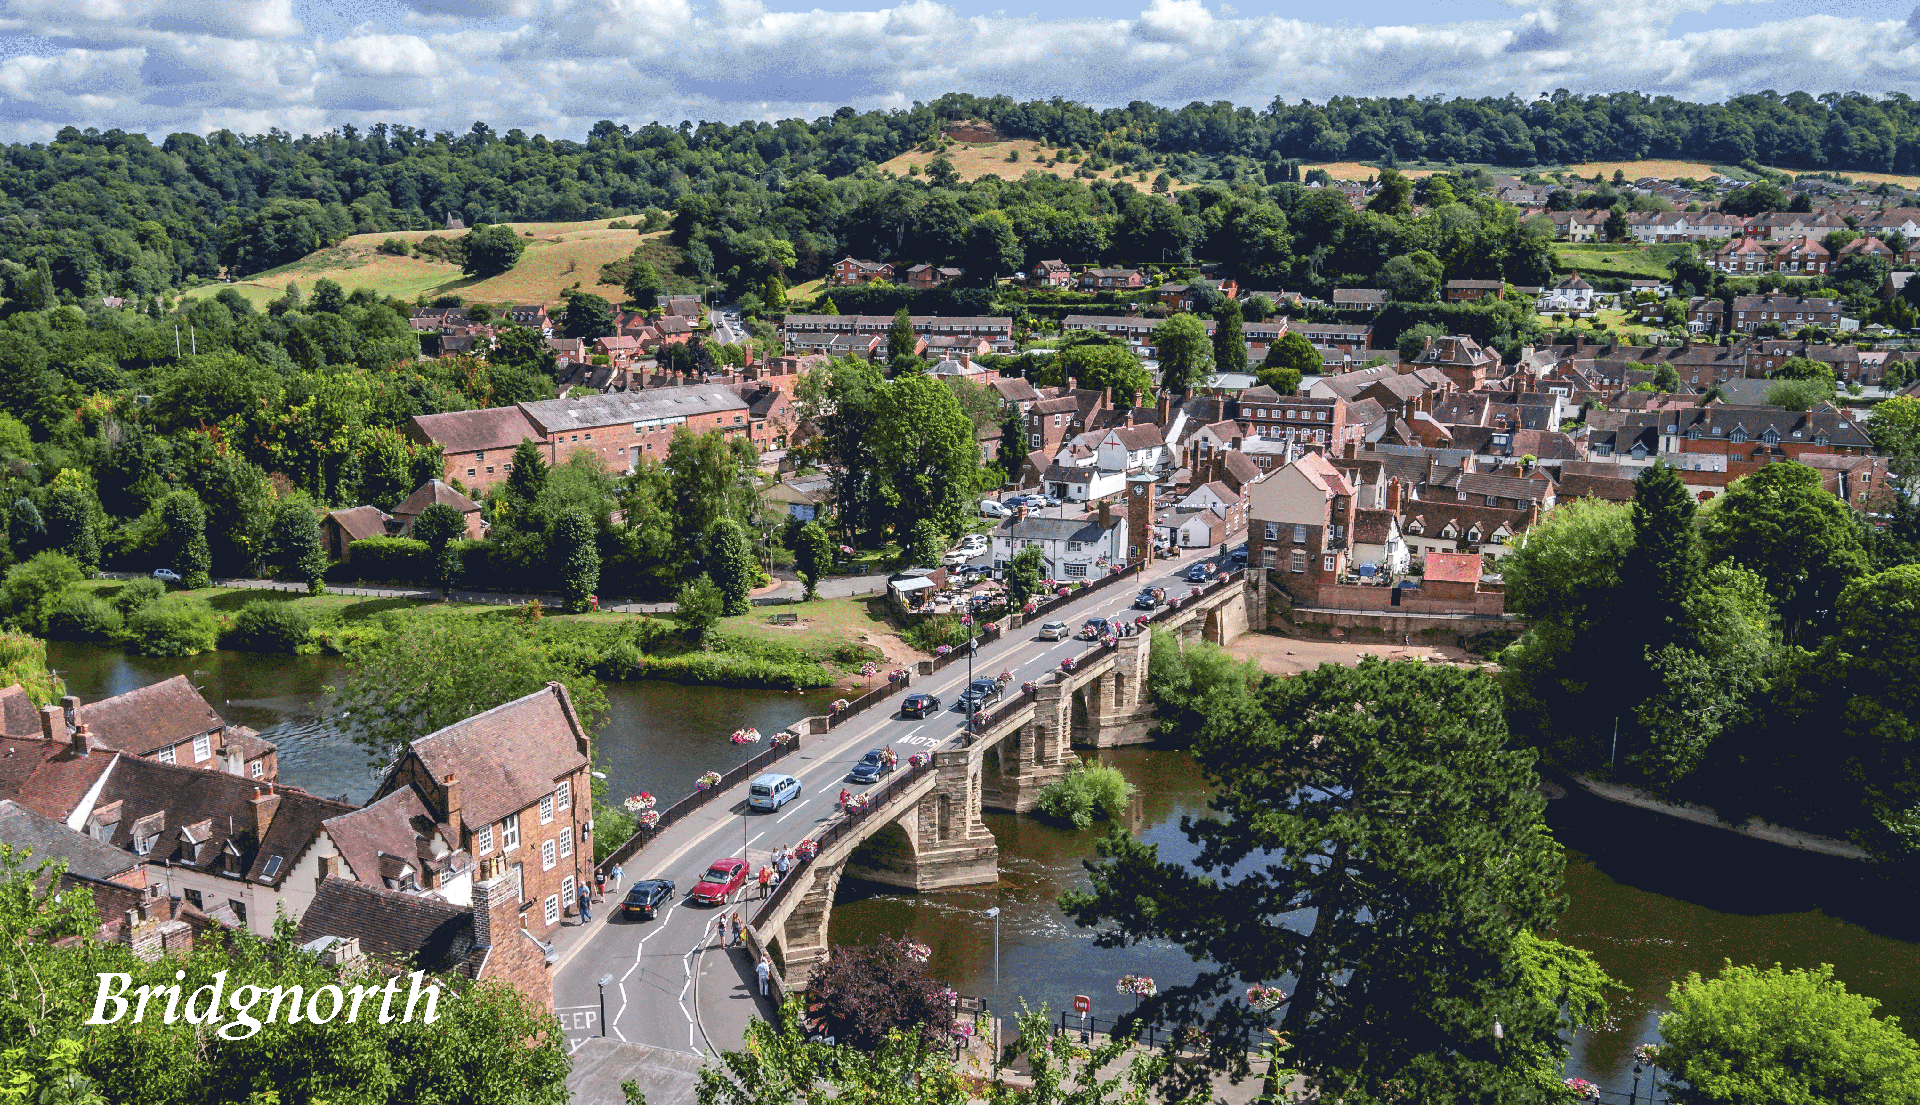 bridgnorth-caption